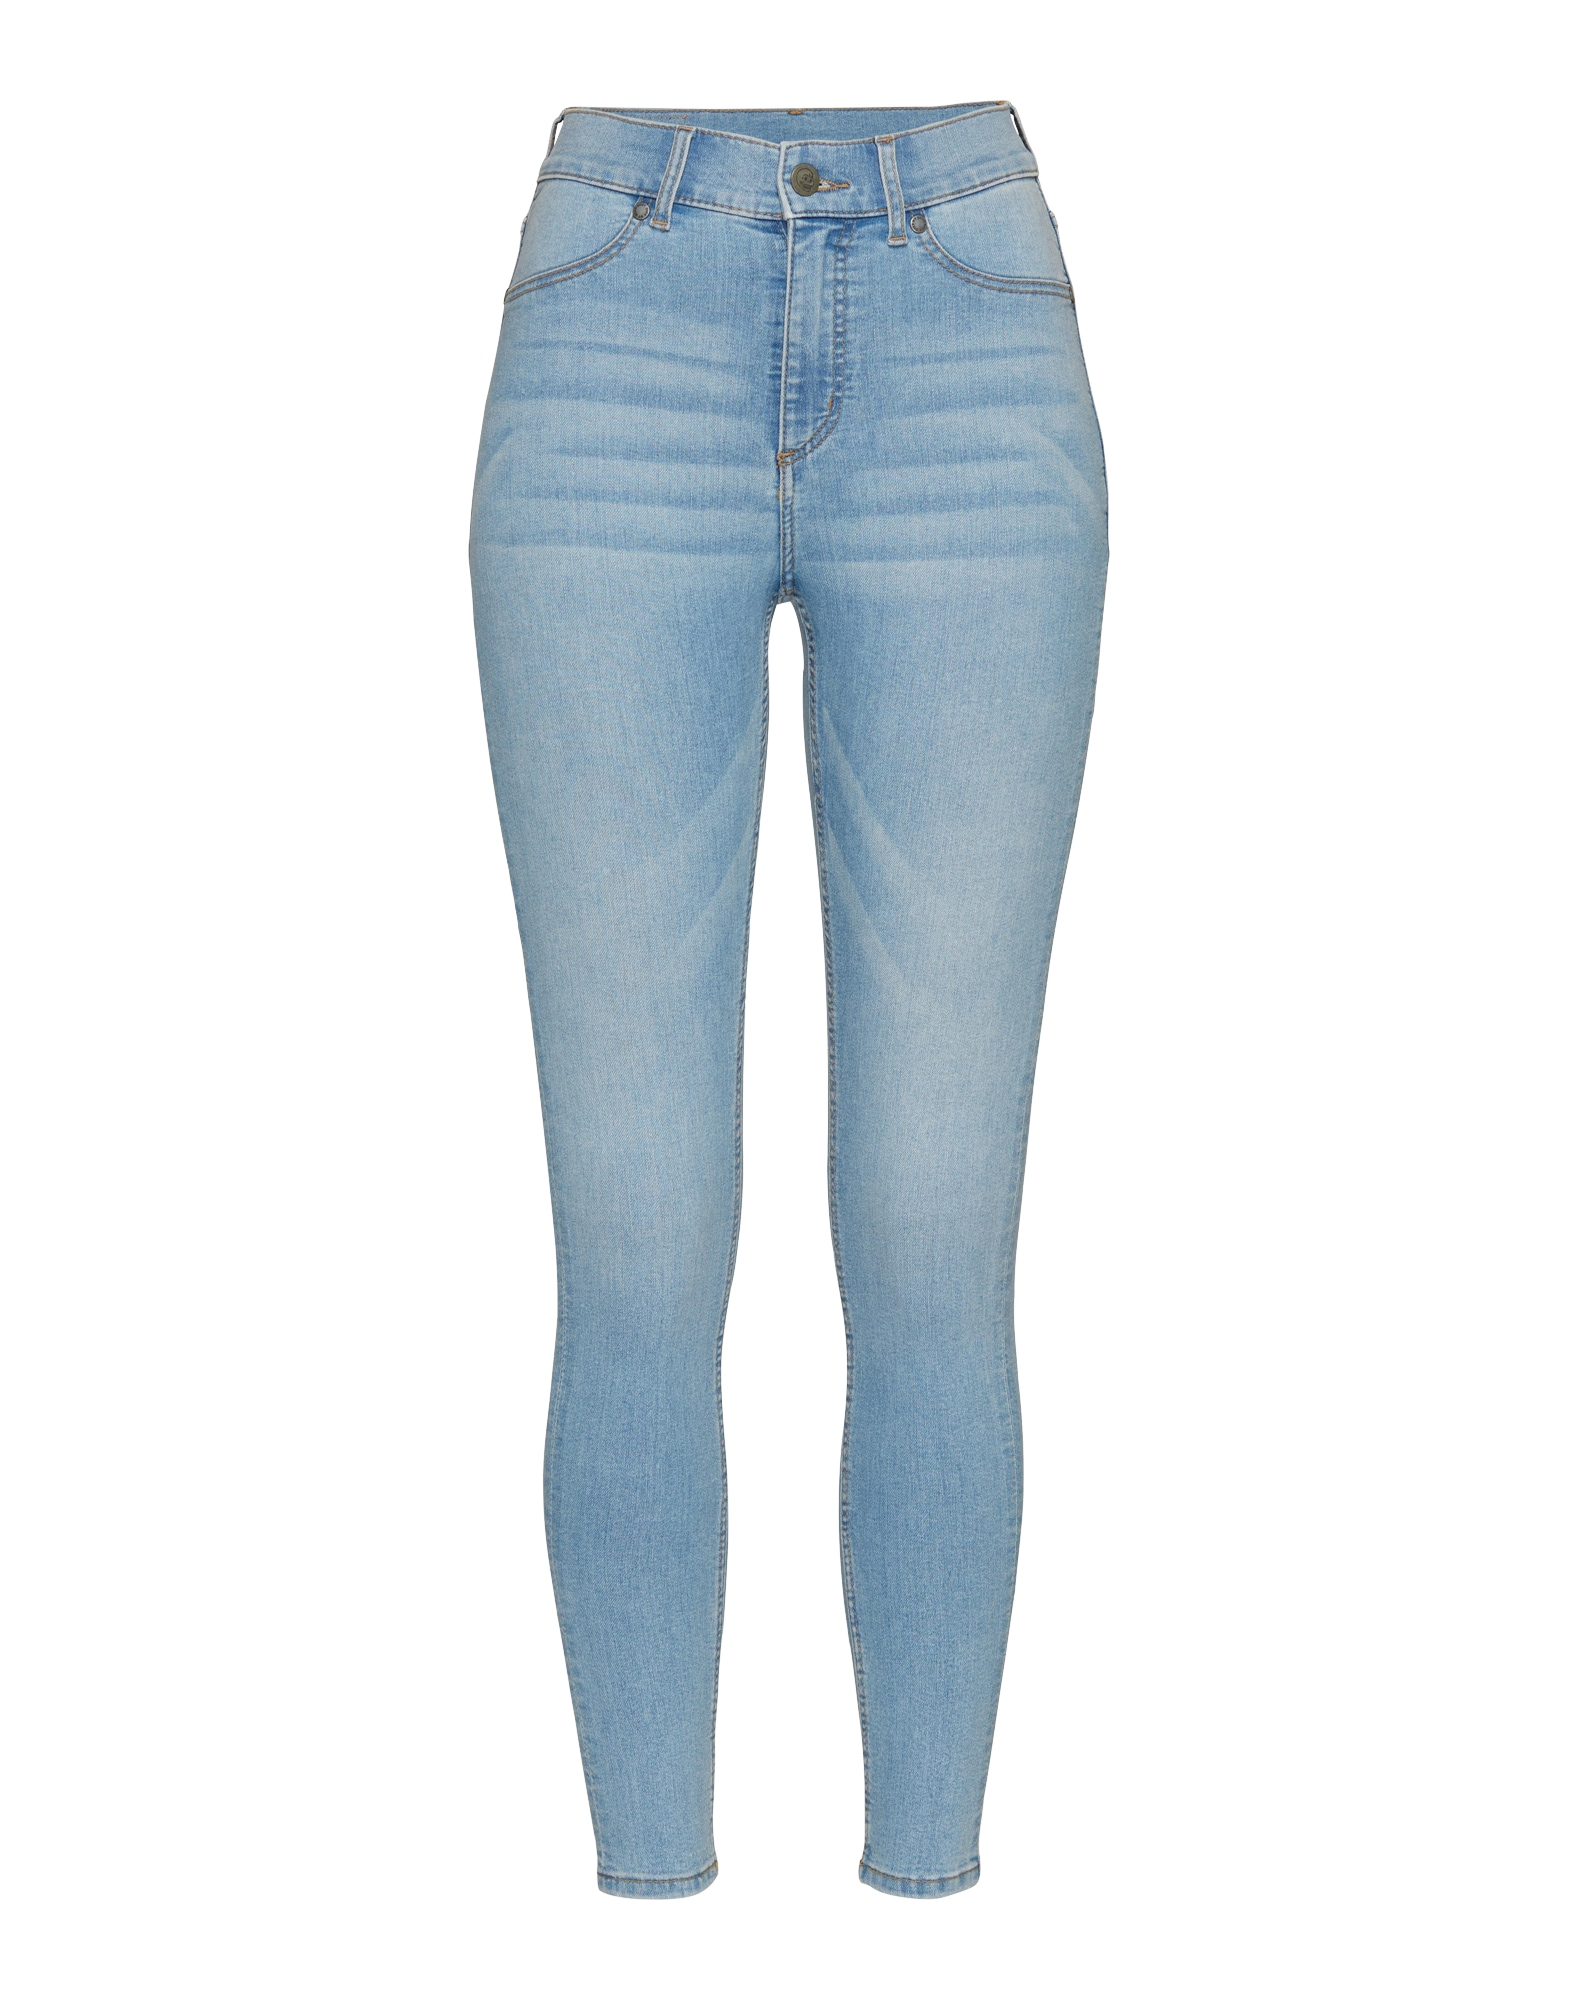 CHEAP MONDAY Dames Jeans lichtblauw